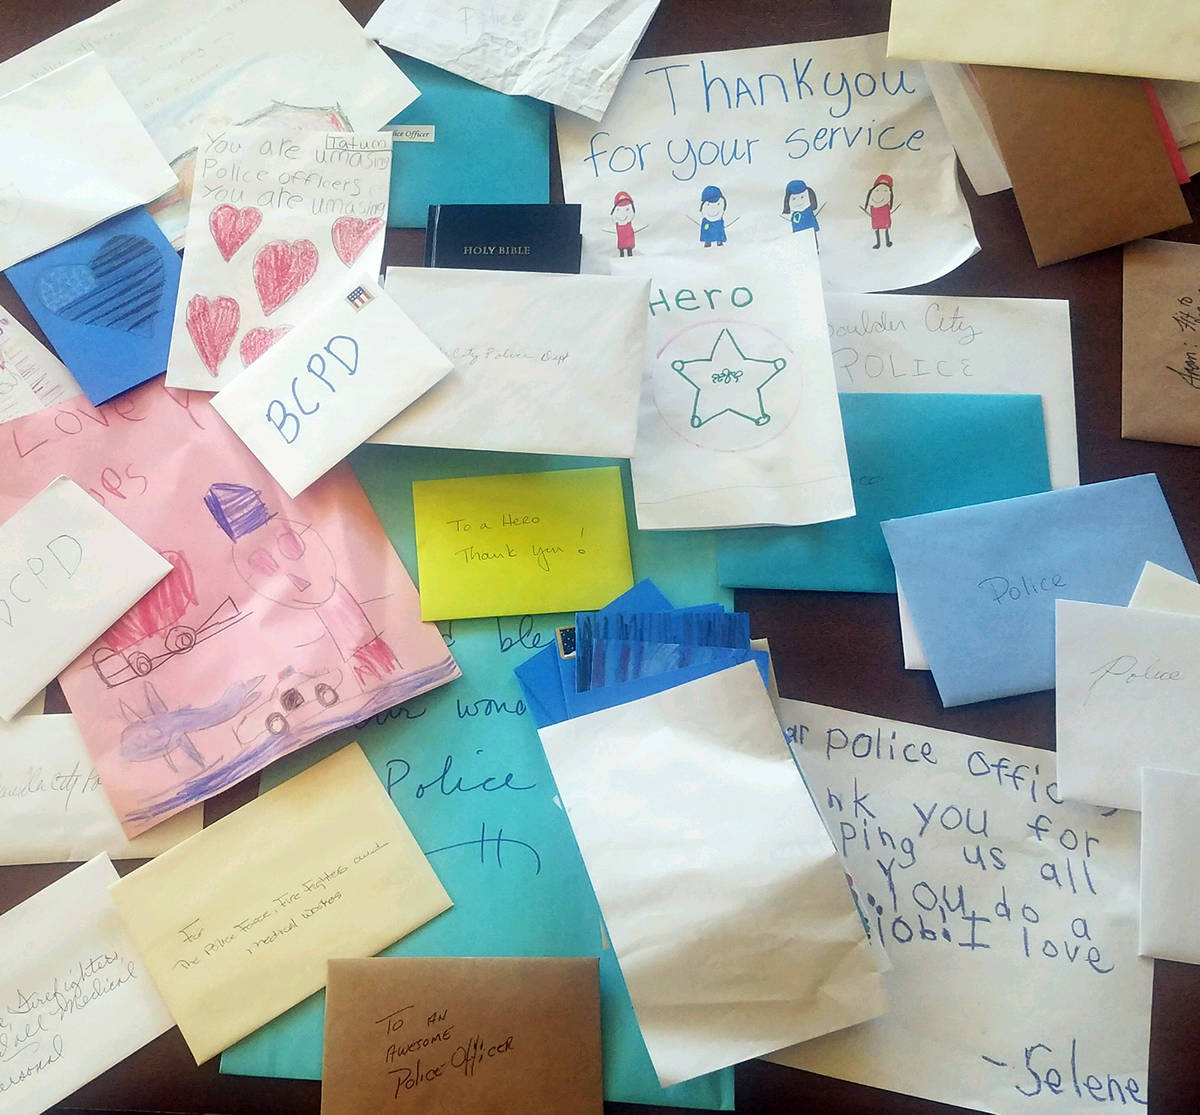 Jason King Calvary Chapel collected hundreds of thank-you cards for local first responders and ...